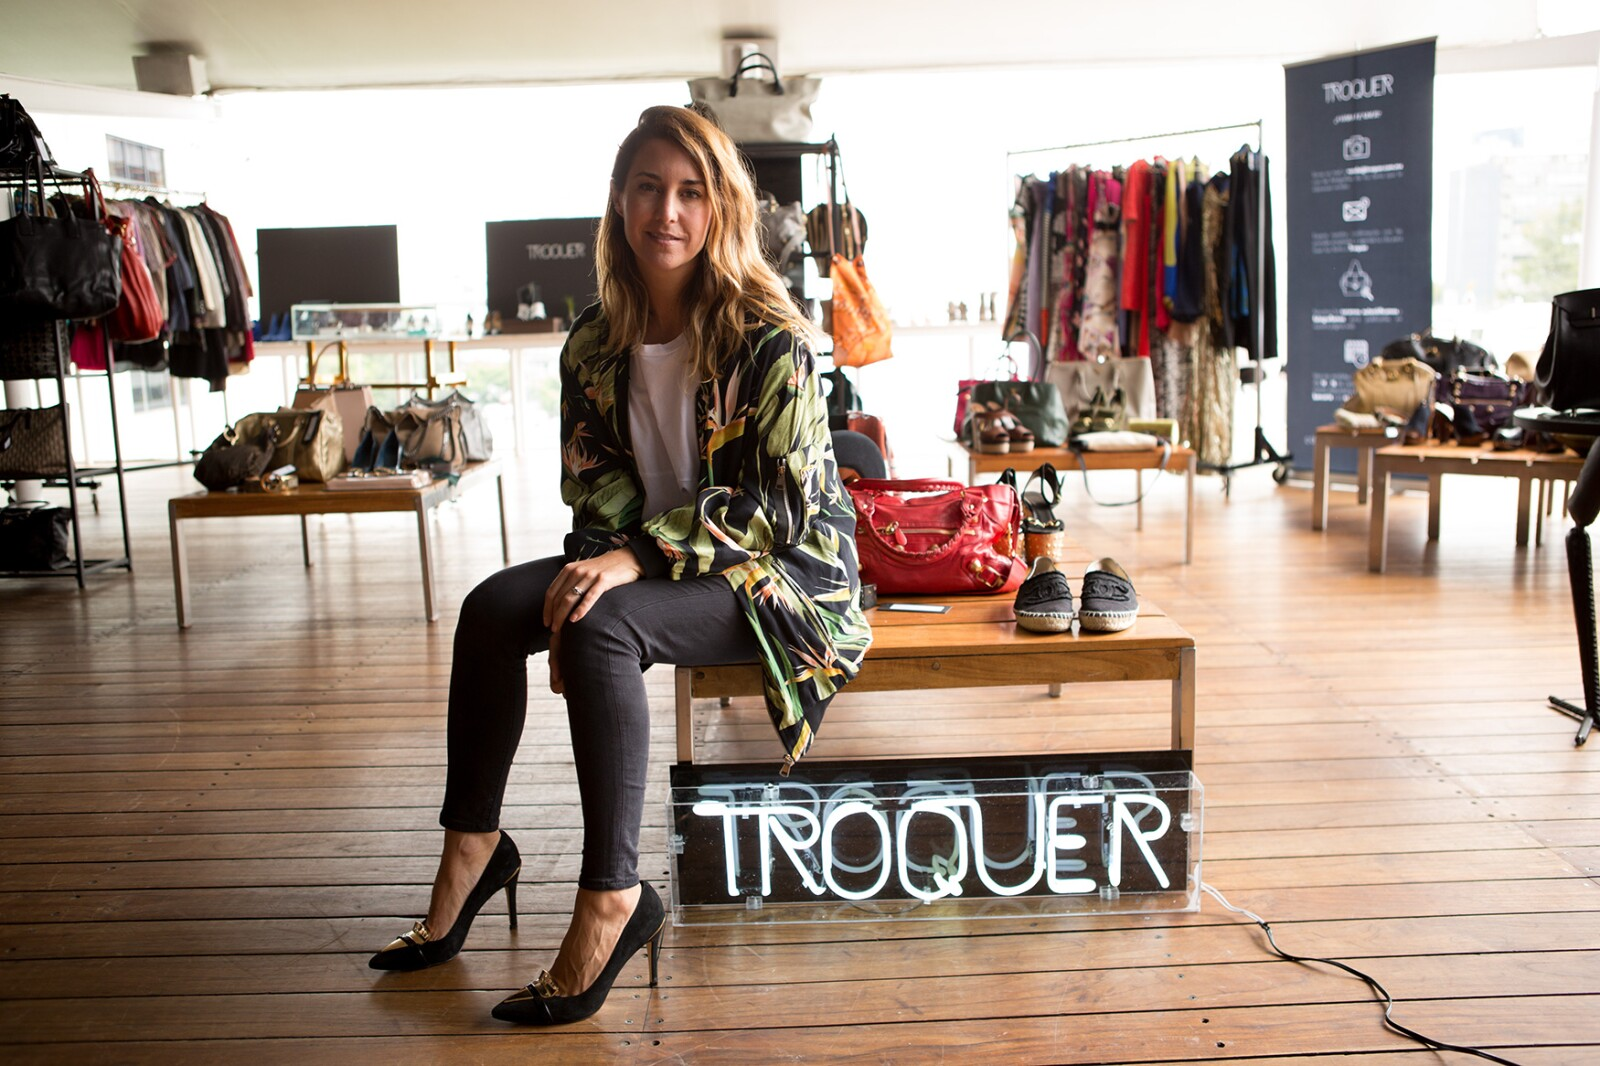 Pop Up de Troquer